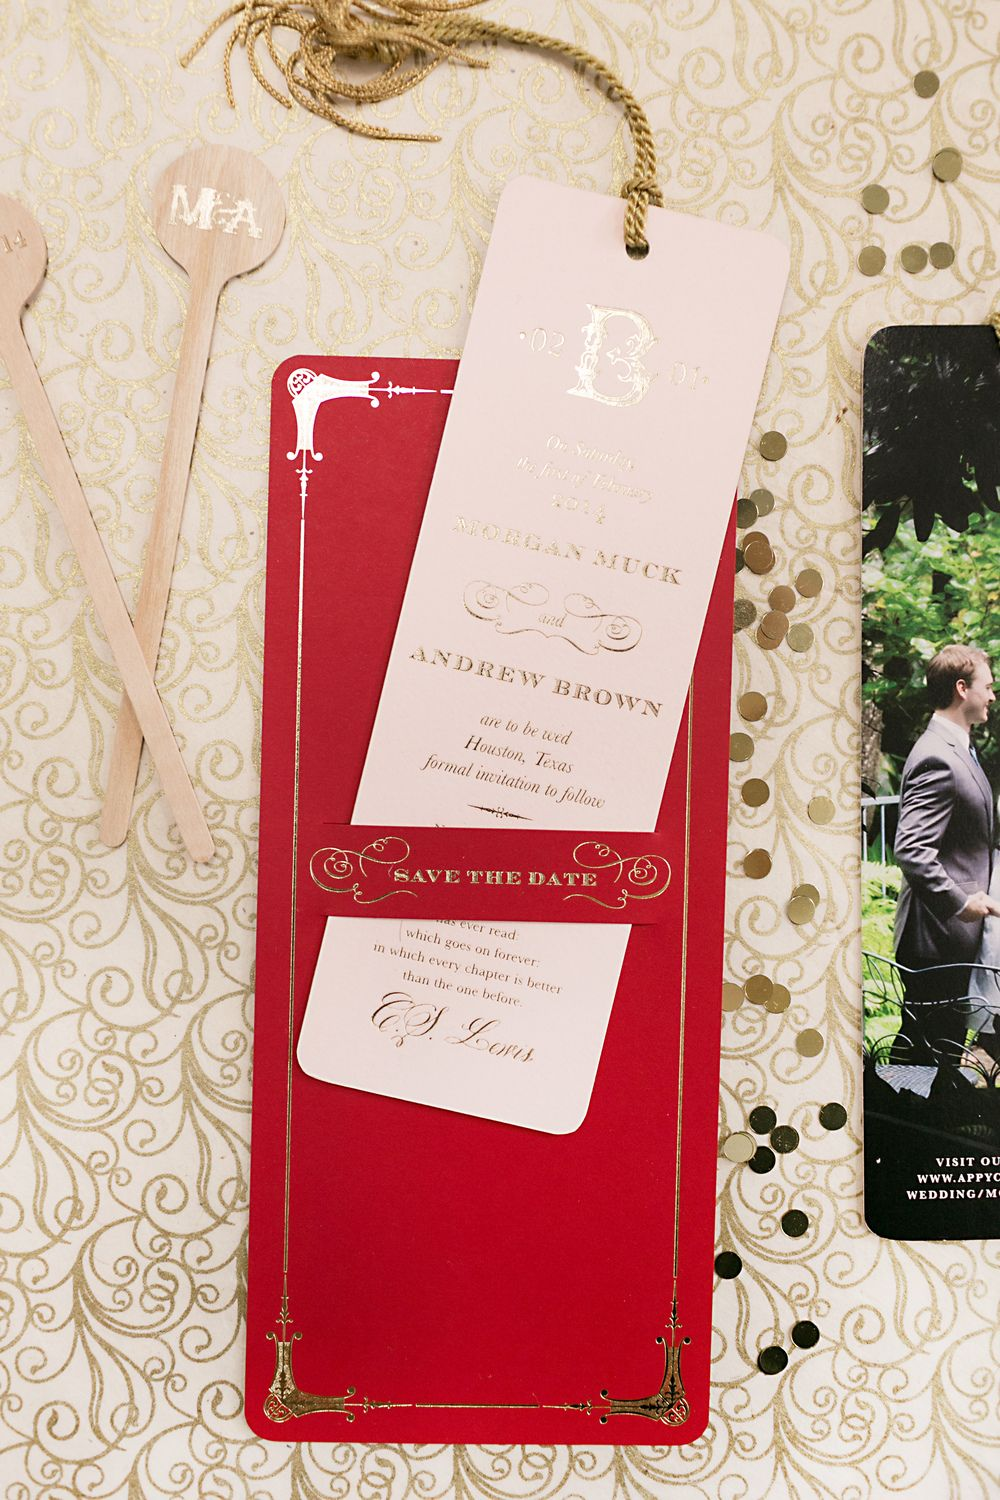 10. MuckM, Morgan + Andrew save the date, designed by Amy Boyter of ...